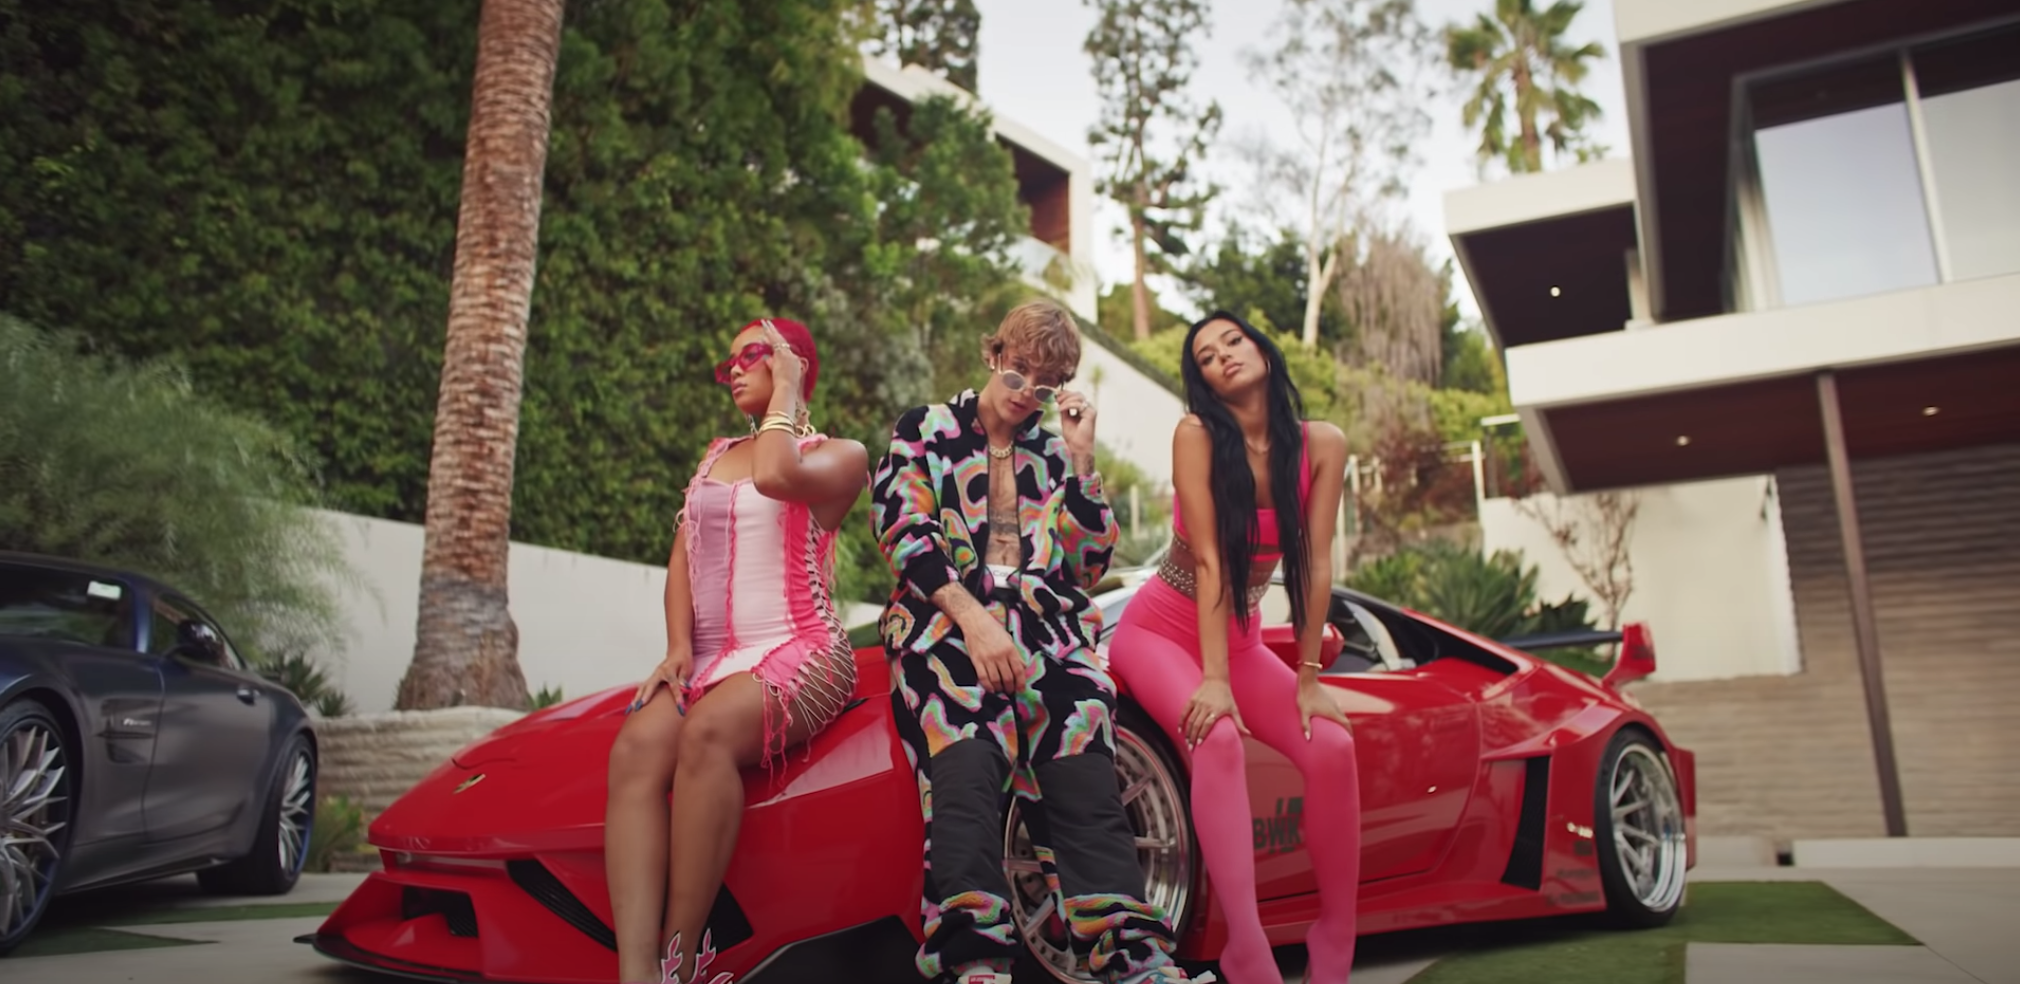 Justin poses with guests in front of expensive cars outside